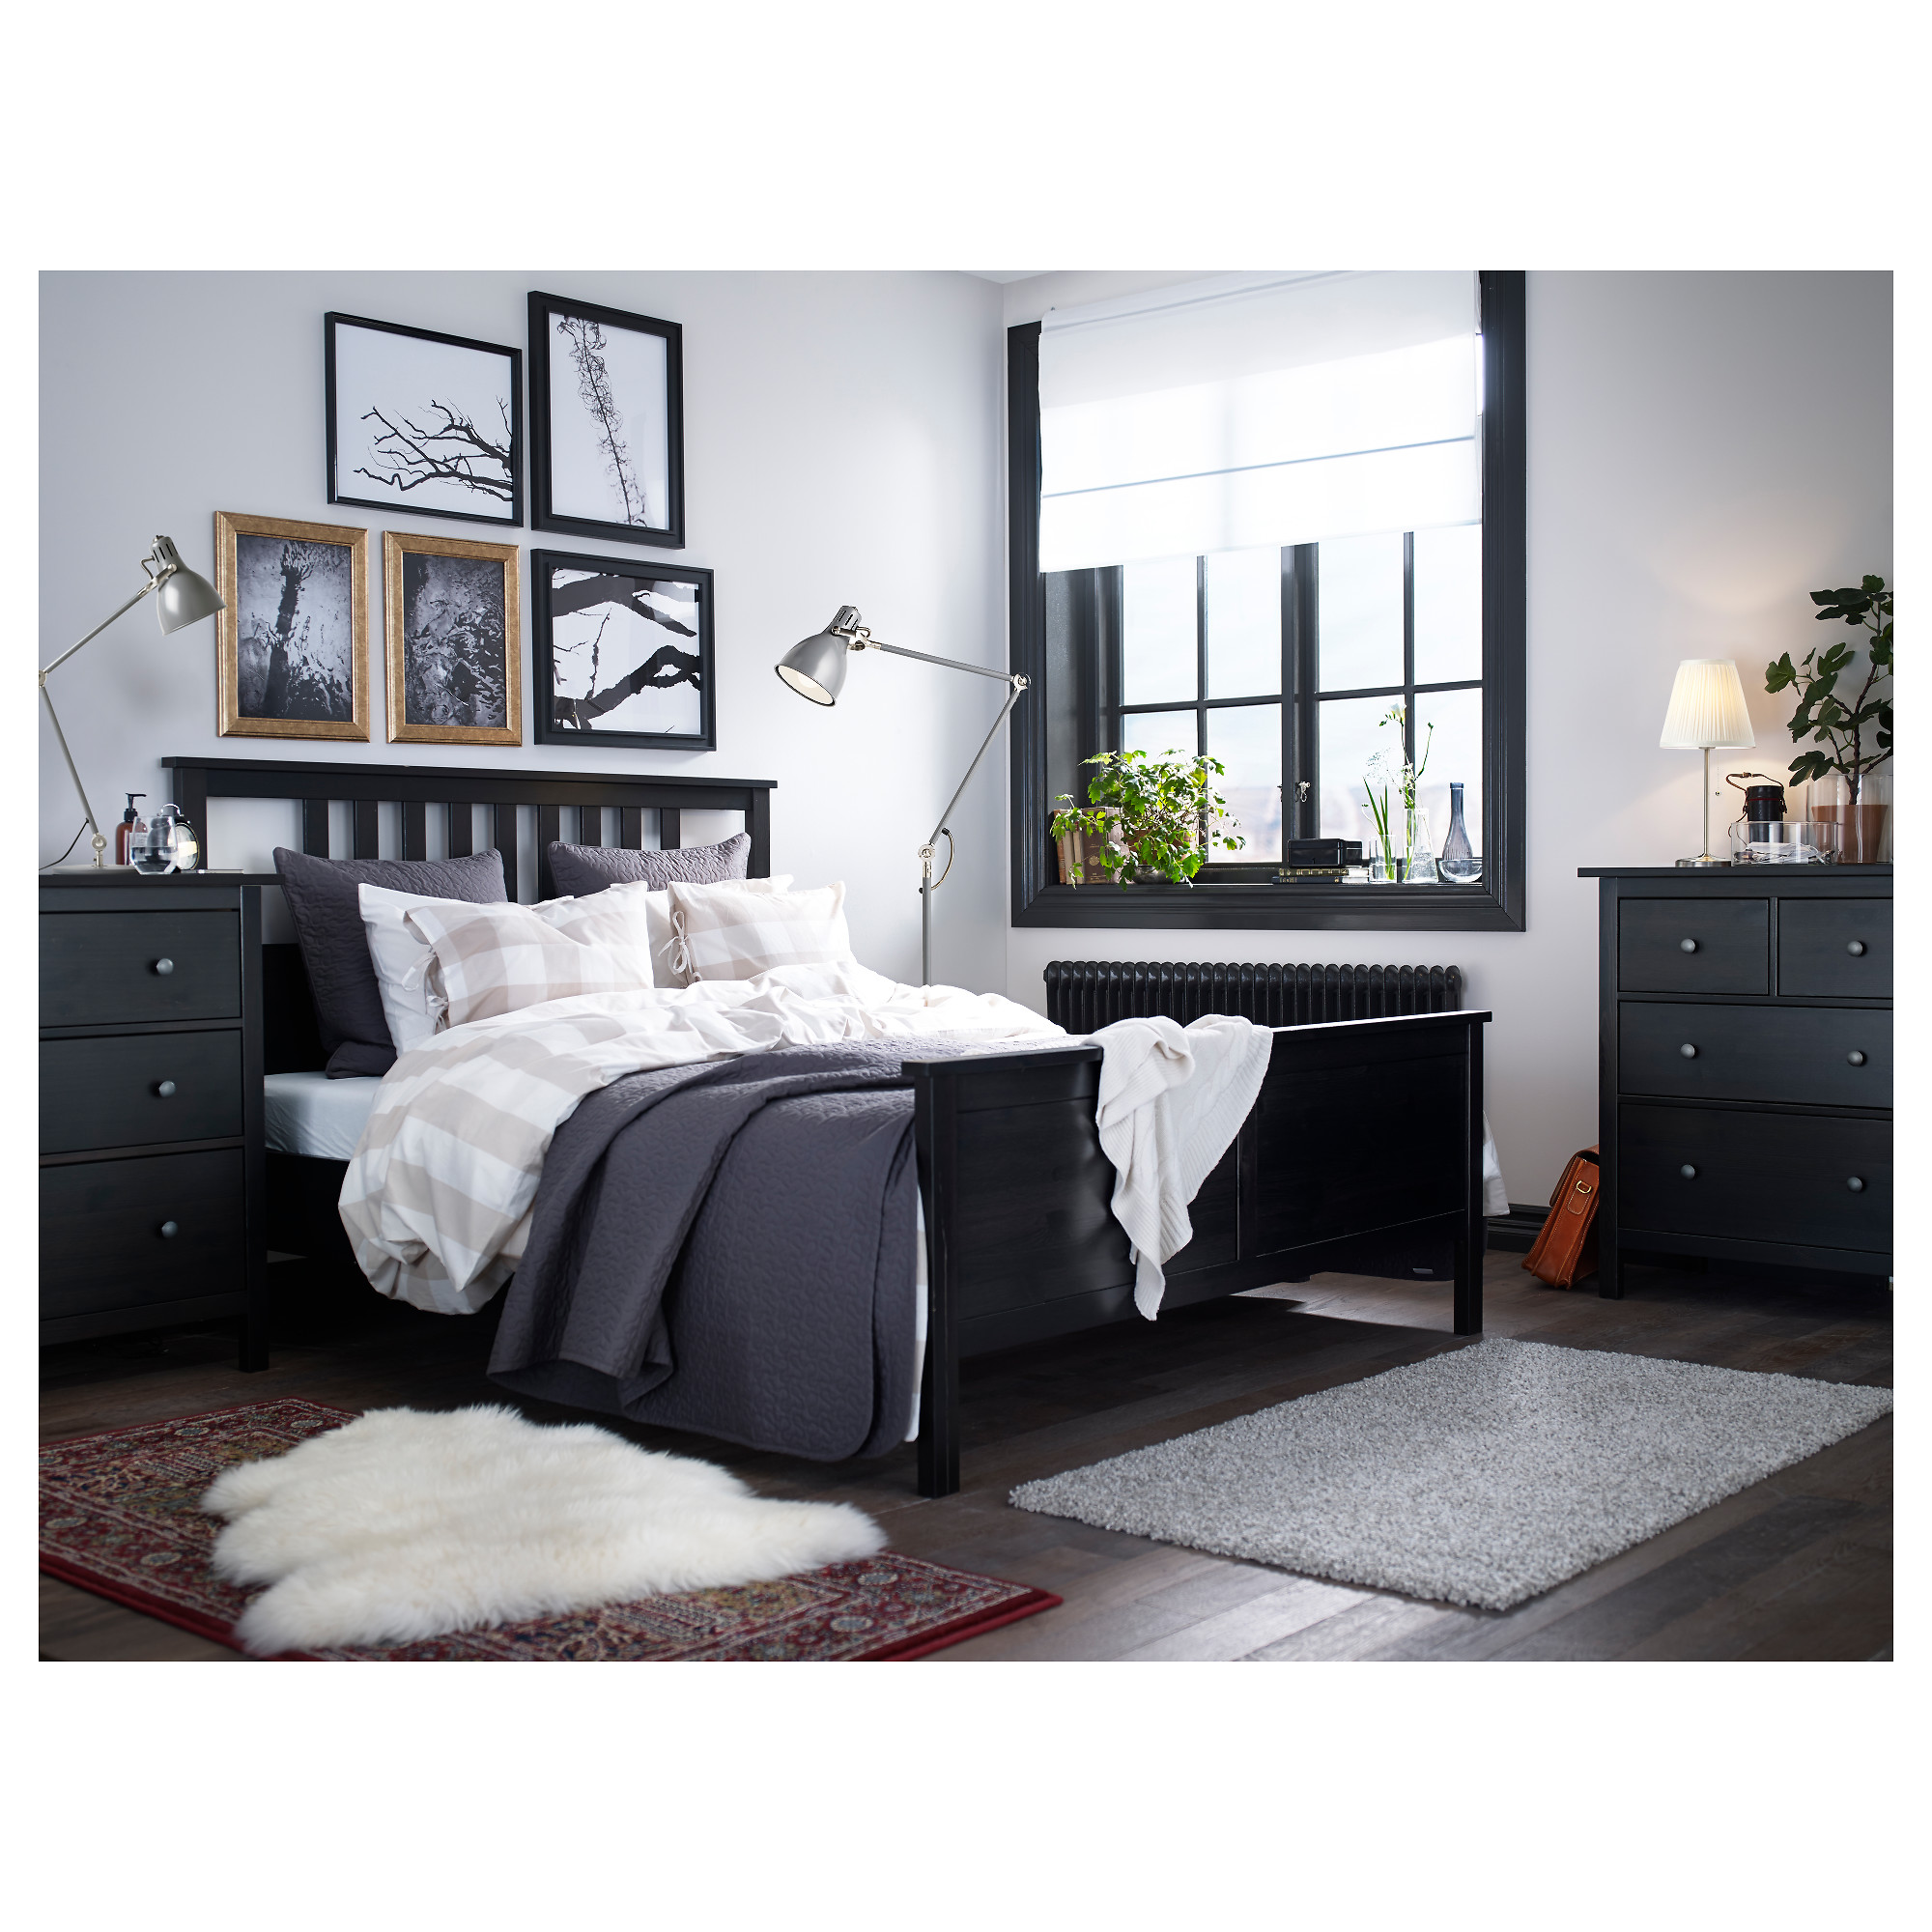 awesome Hemnes Ikea Bed Frame Part - 11: IKEA HEMNES Bed frame